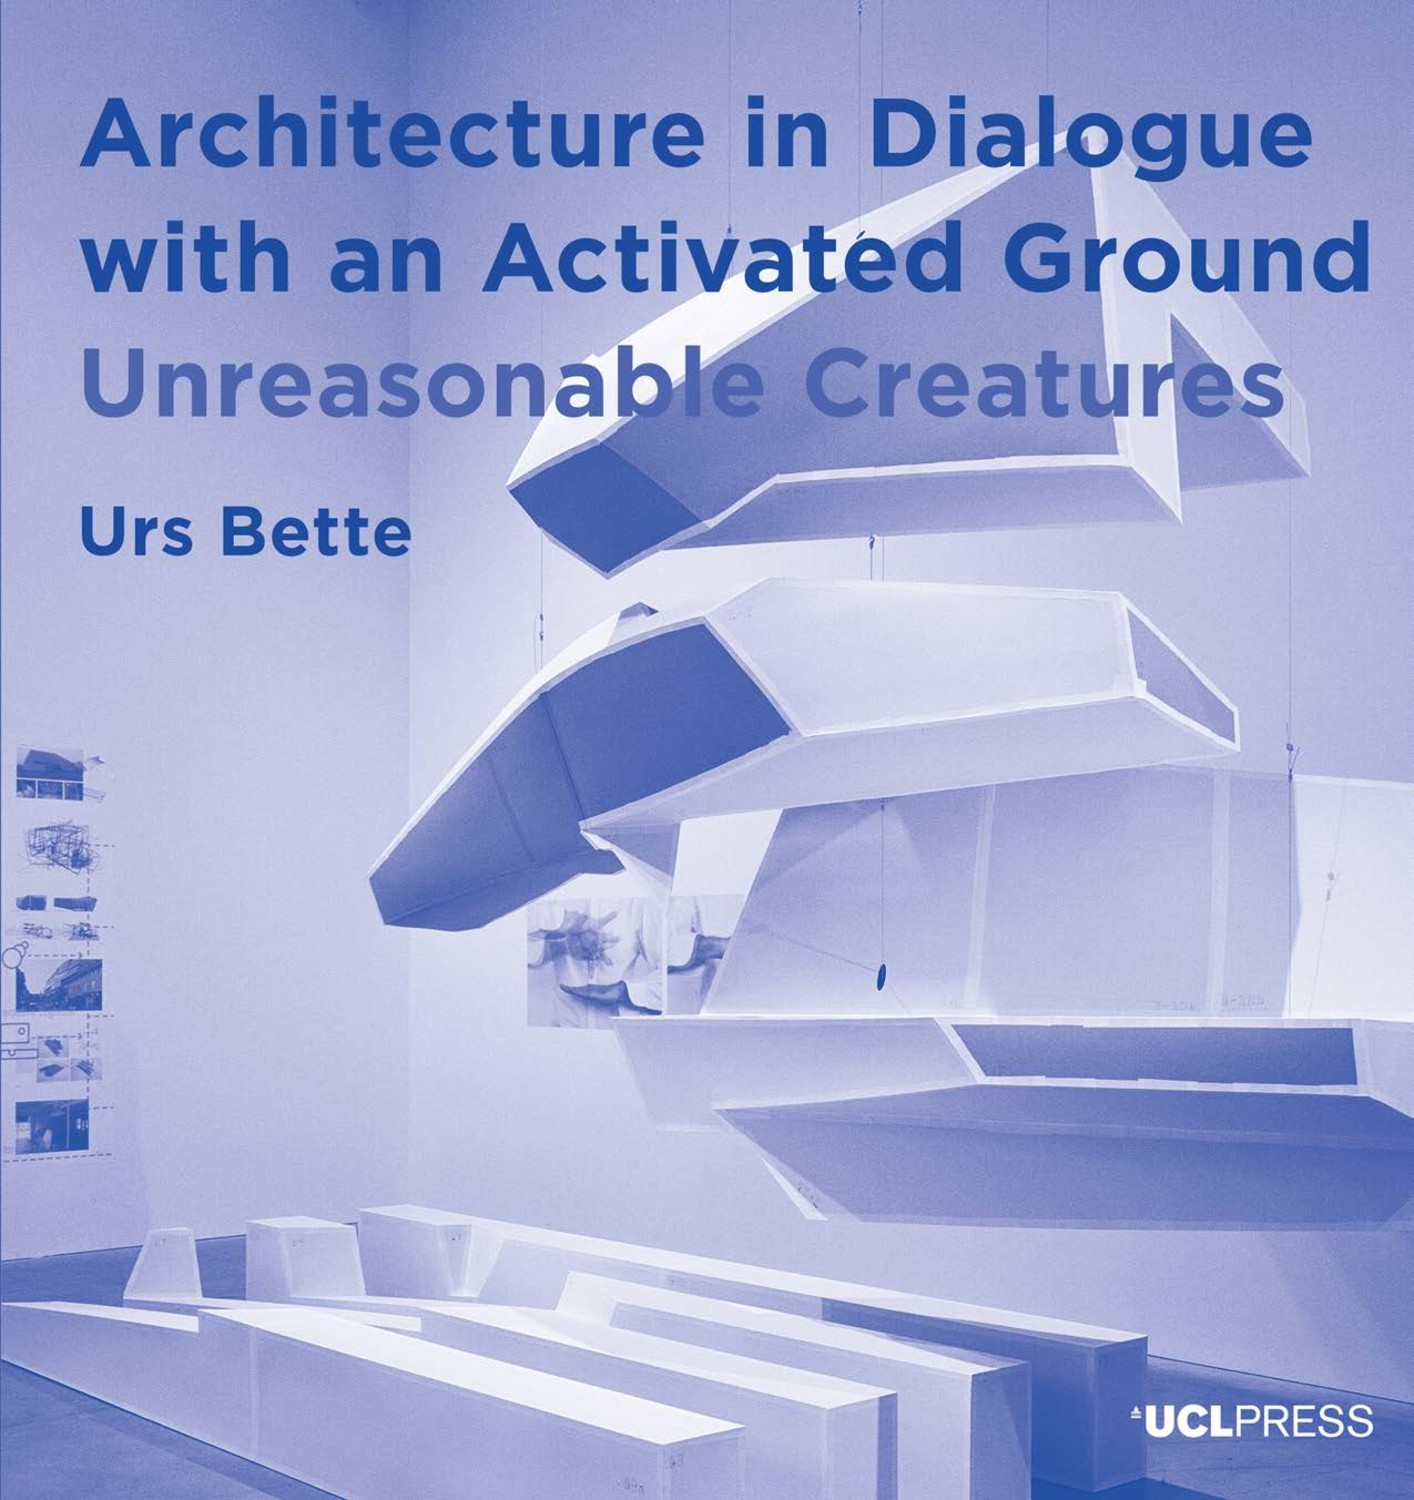 Architecture in Dialogue with an Activated Ground